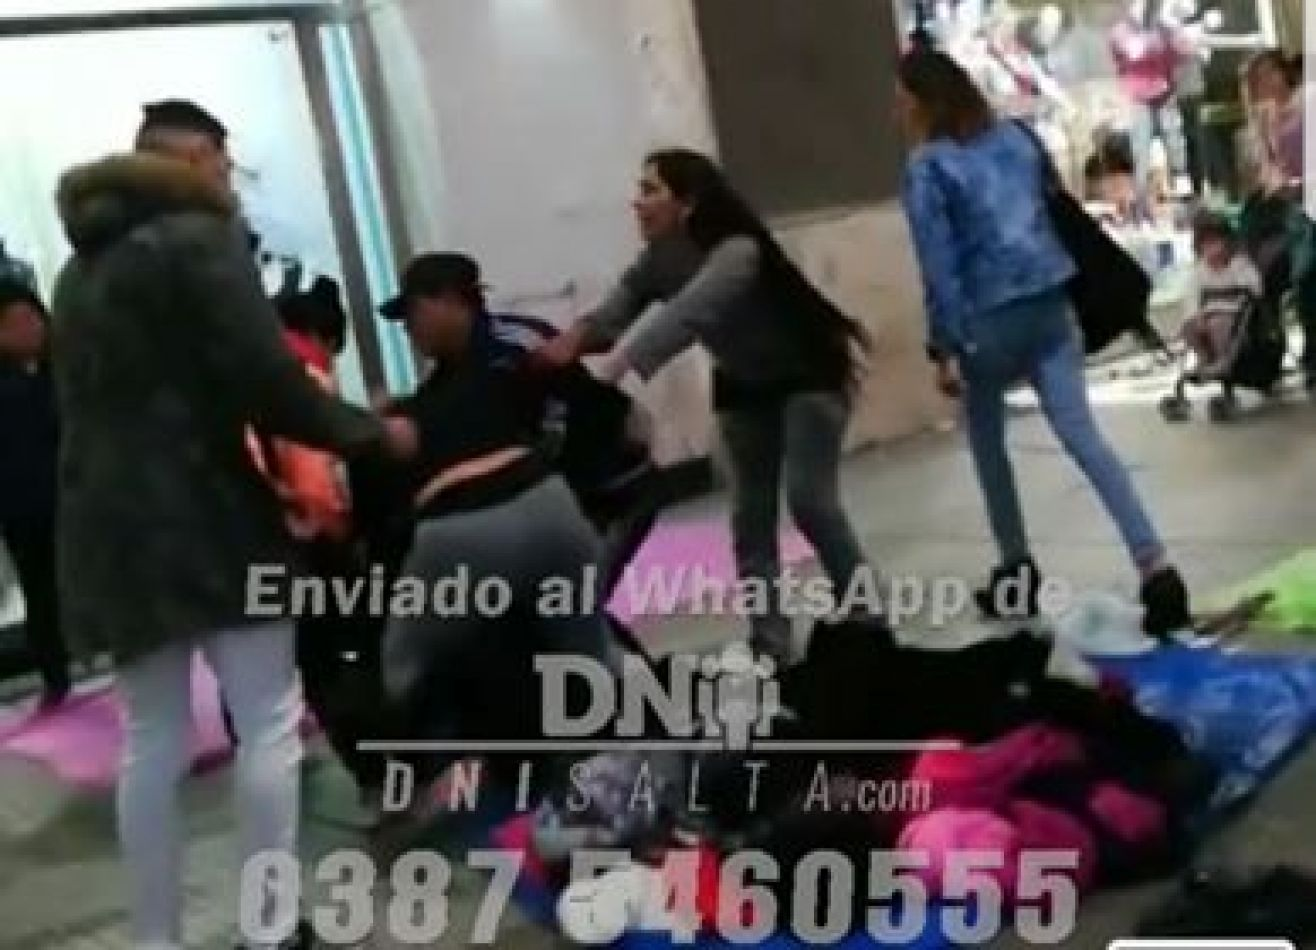 Captura del video enviado por seguidores al WhatsApp de DNIsalta.com - 0387 - 155460555